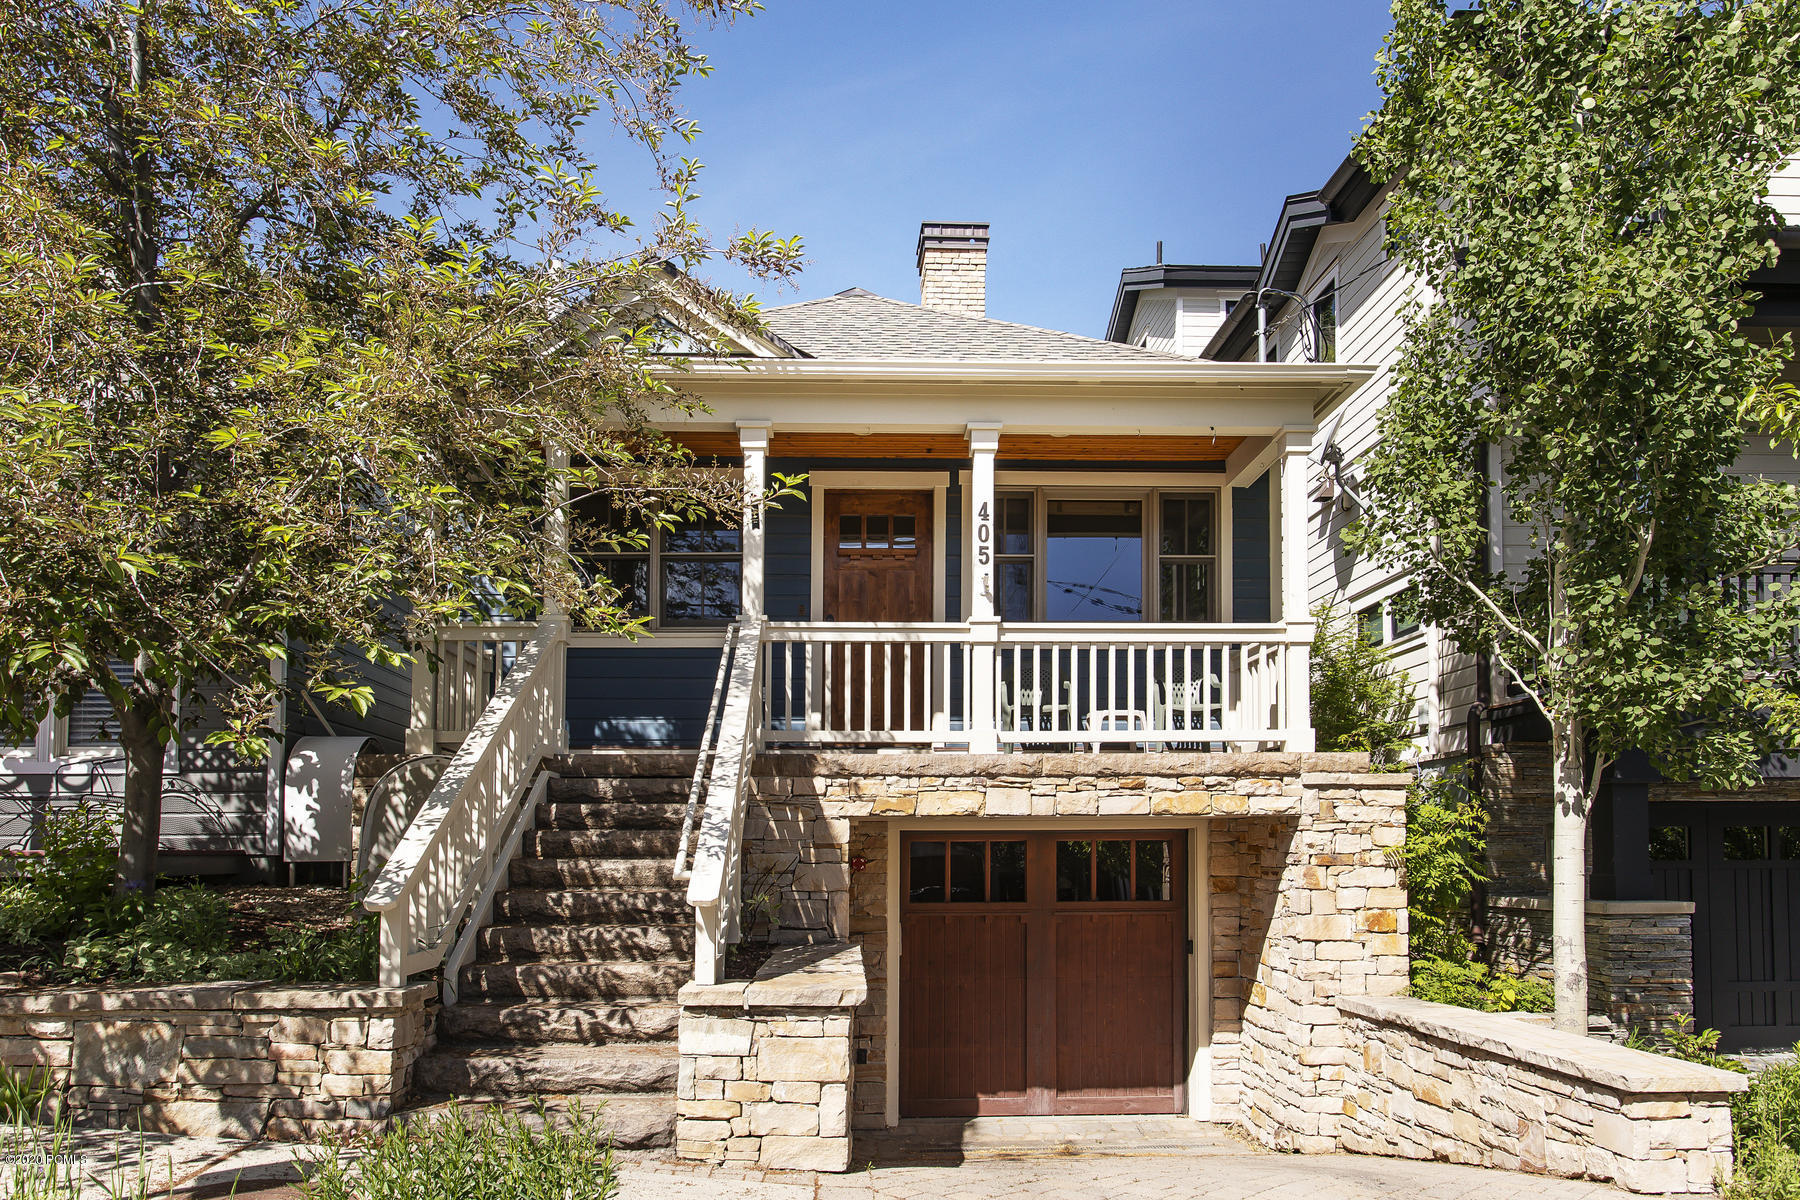 405 Park Avenue, Park City, Utah 84060, 3 Bedrooms Bedrooms, ,3 BathroomsBathrooms,Single Family,For Sale,Park,20190109112430415765000000